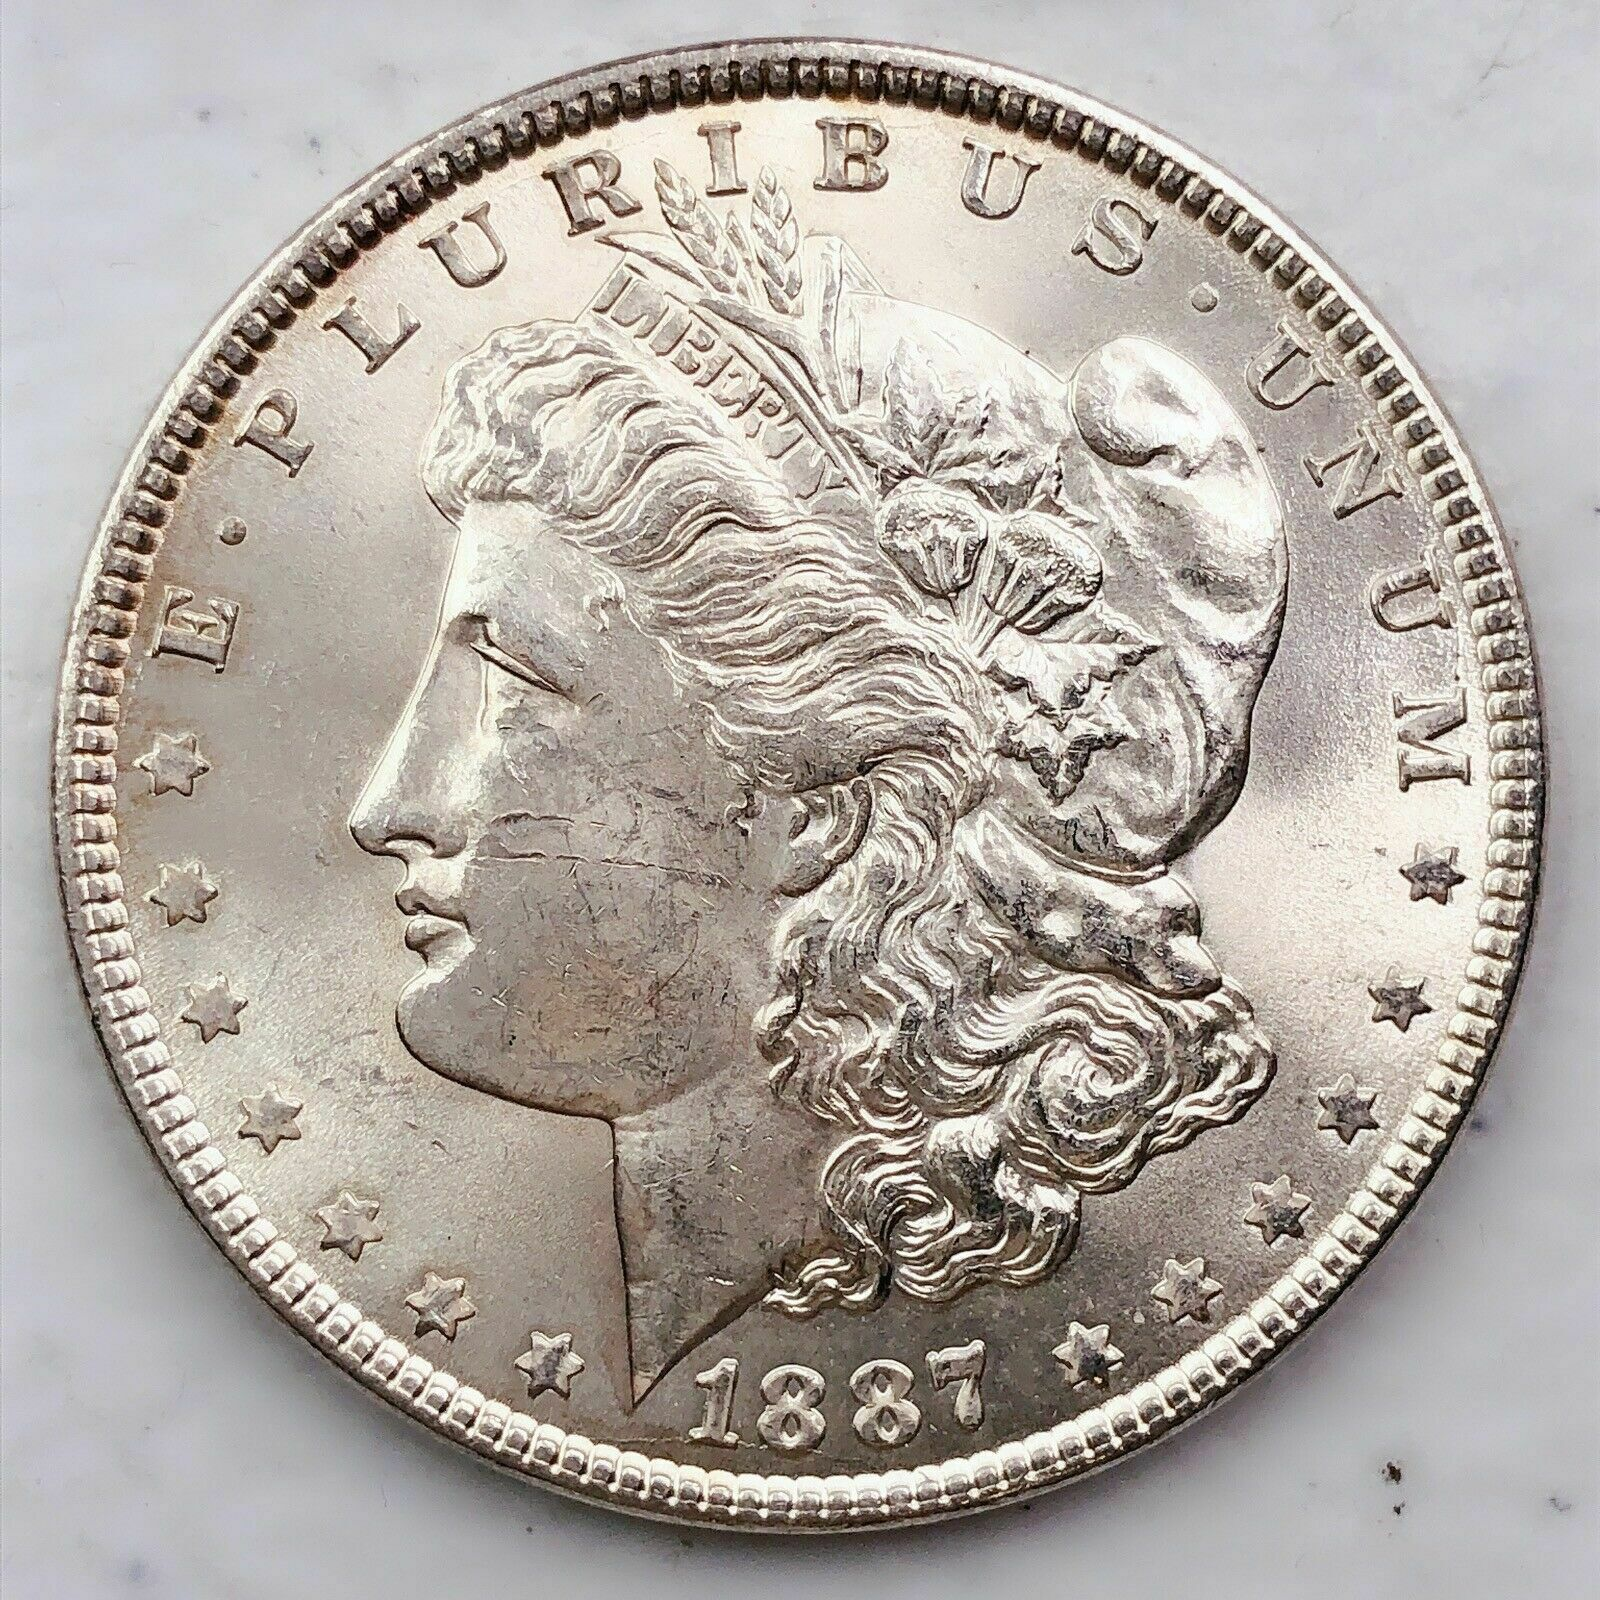 1887 Morgan Silver Dollar Gem BU Free Shipping 1015 - $17.50